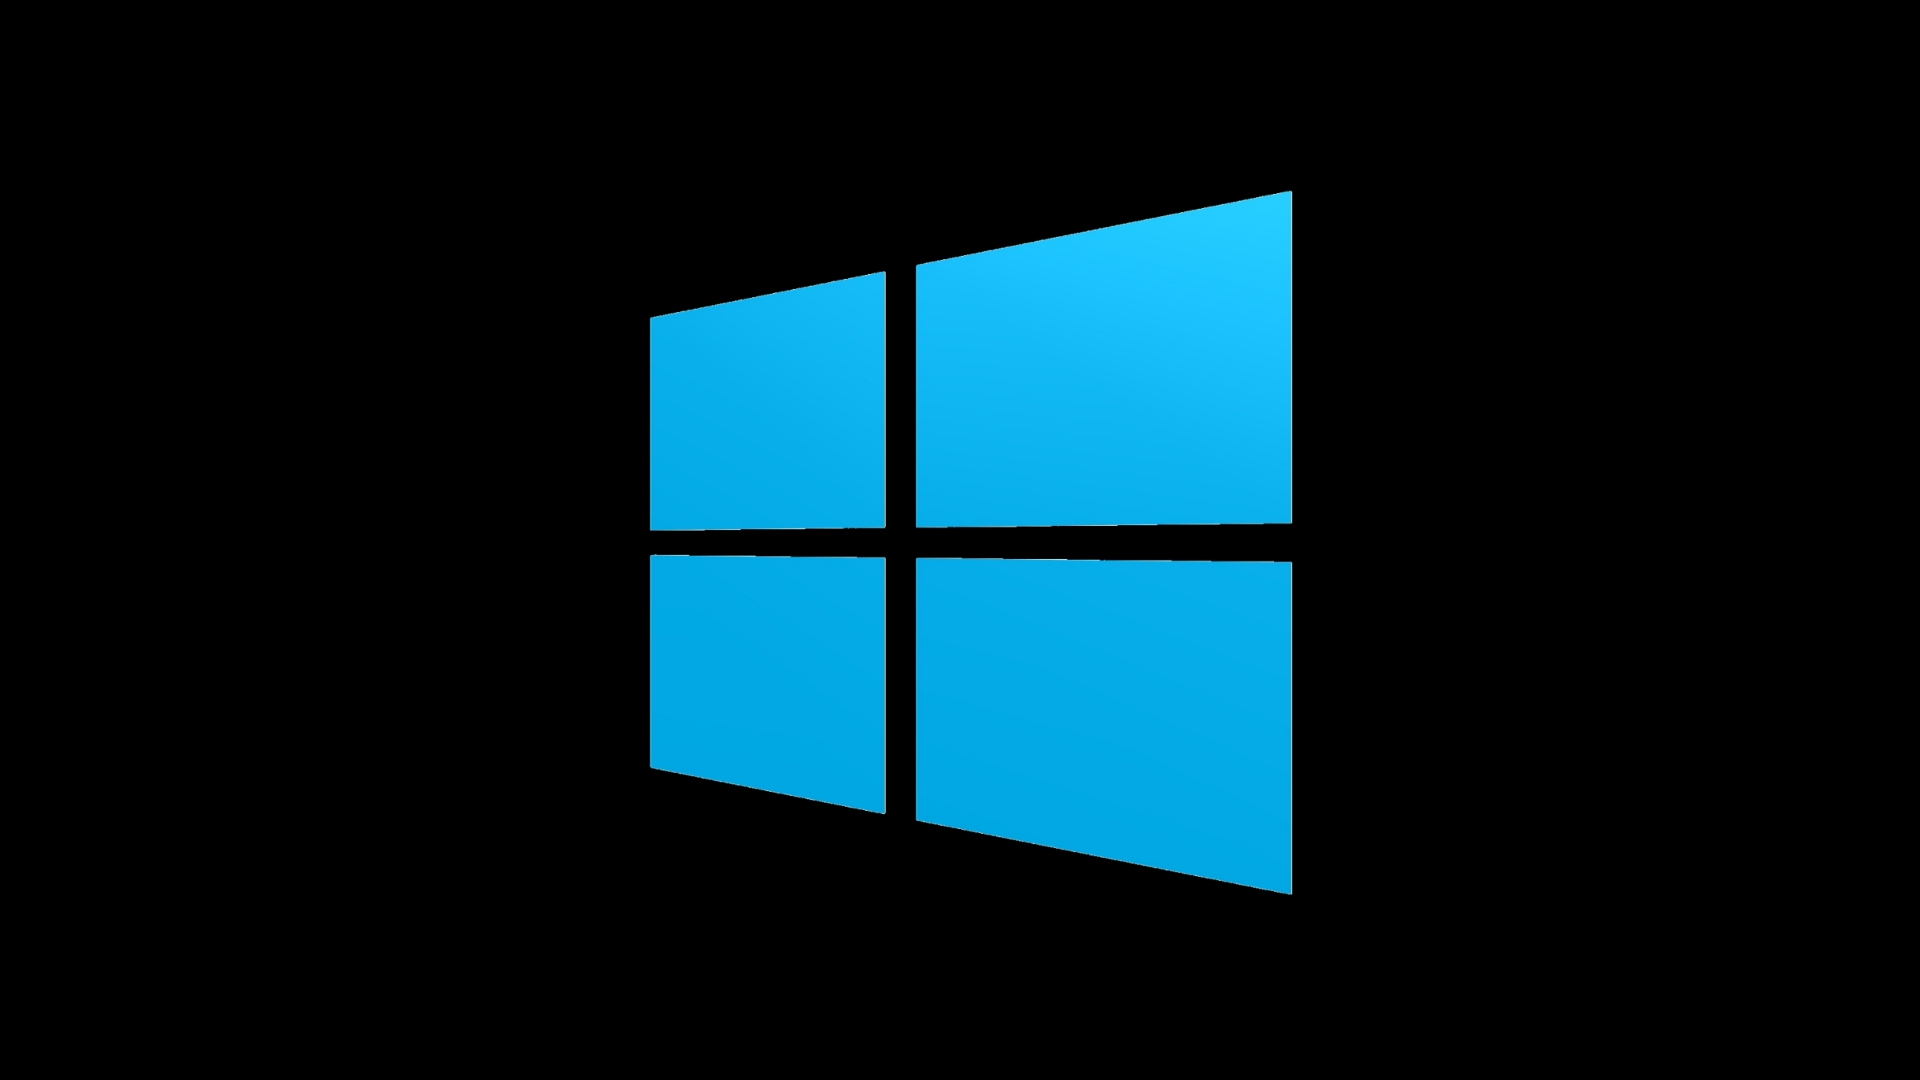 Free download Windows 10 Wont boot off of a disk on a coustom built